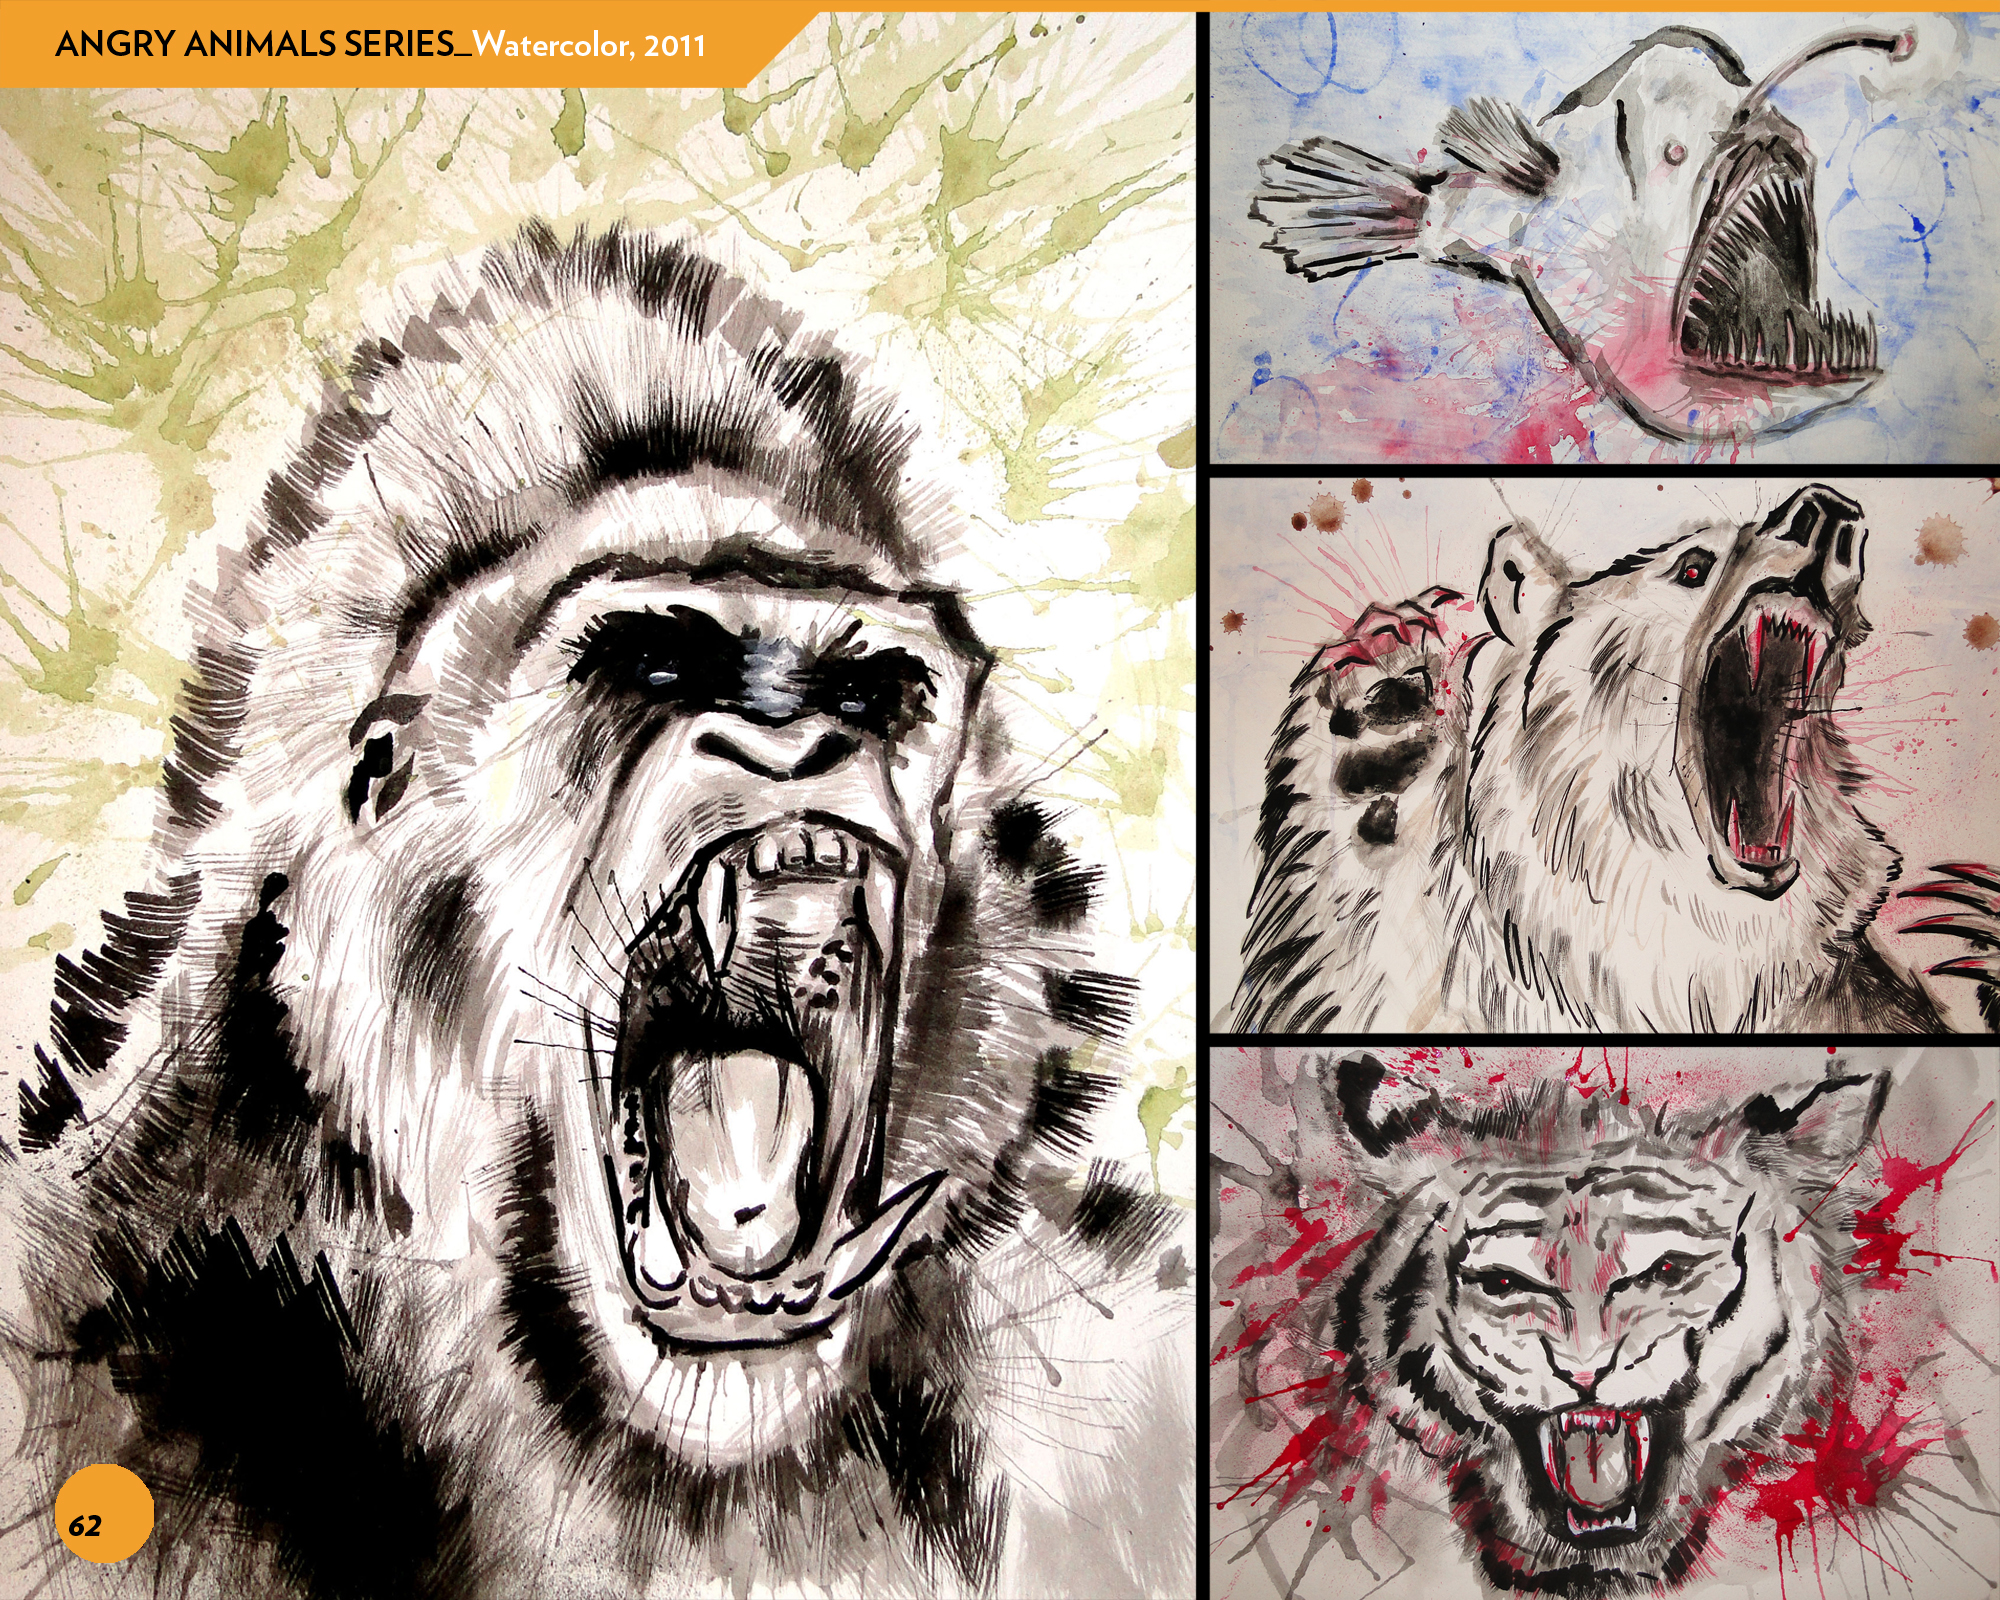 WATERCOLOR SERIES_ANGRY ANIMALS